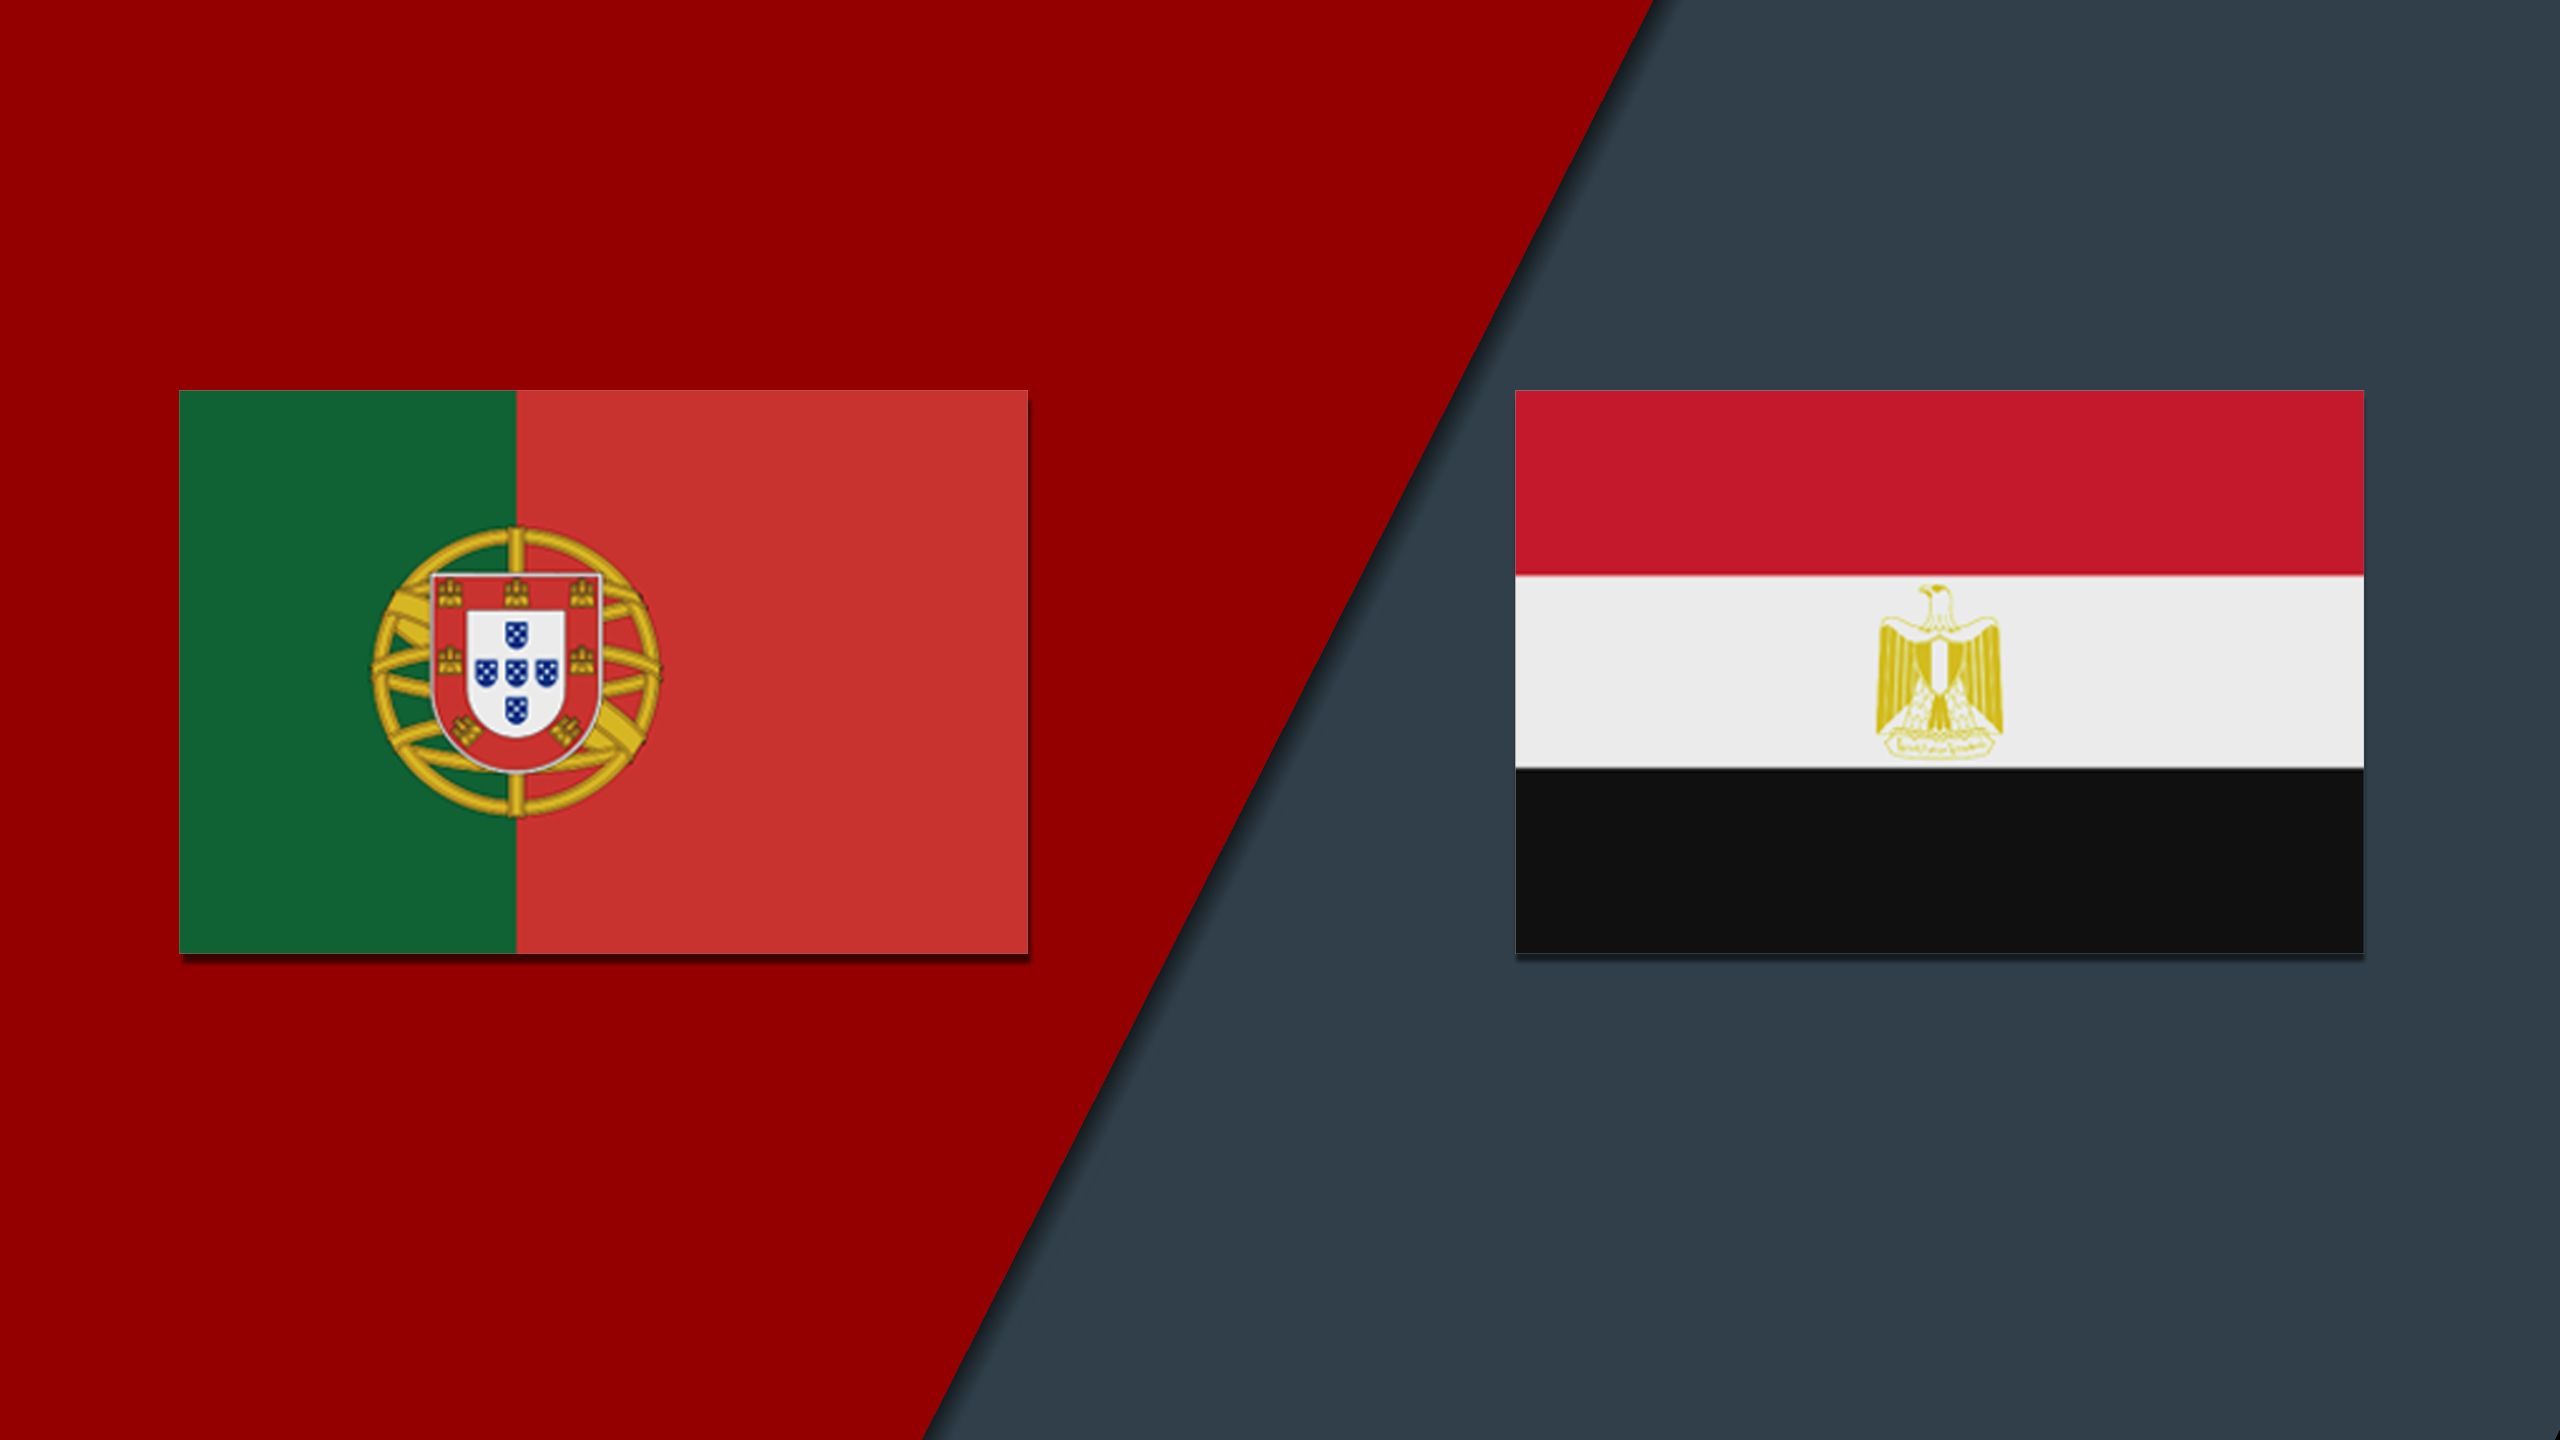 In Spanish - Portugal vs. Egypt (International Friendly)